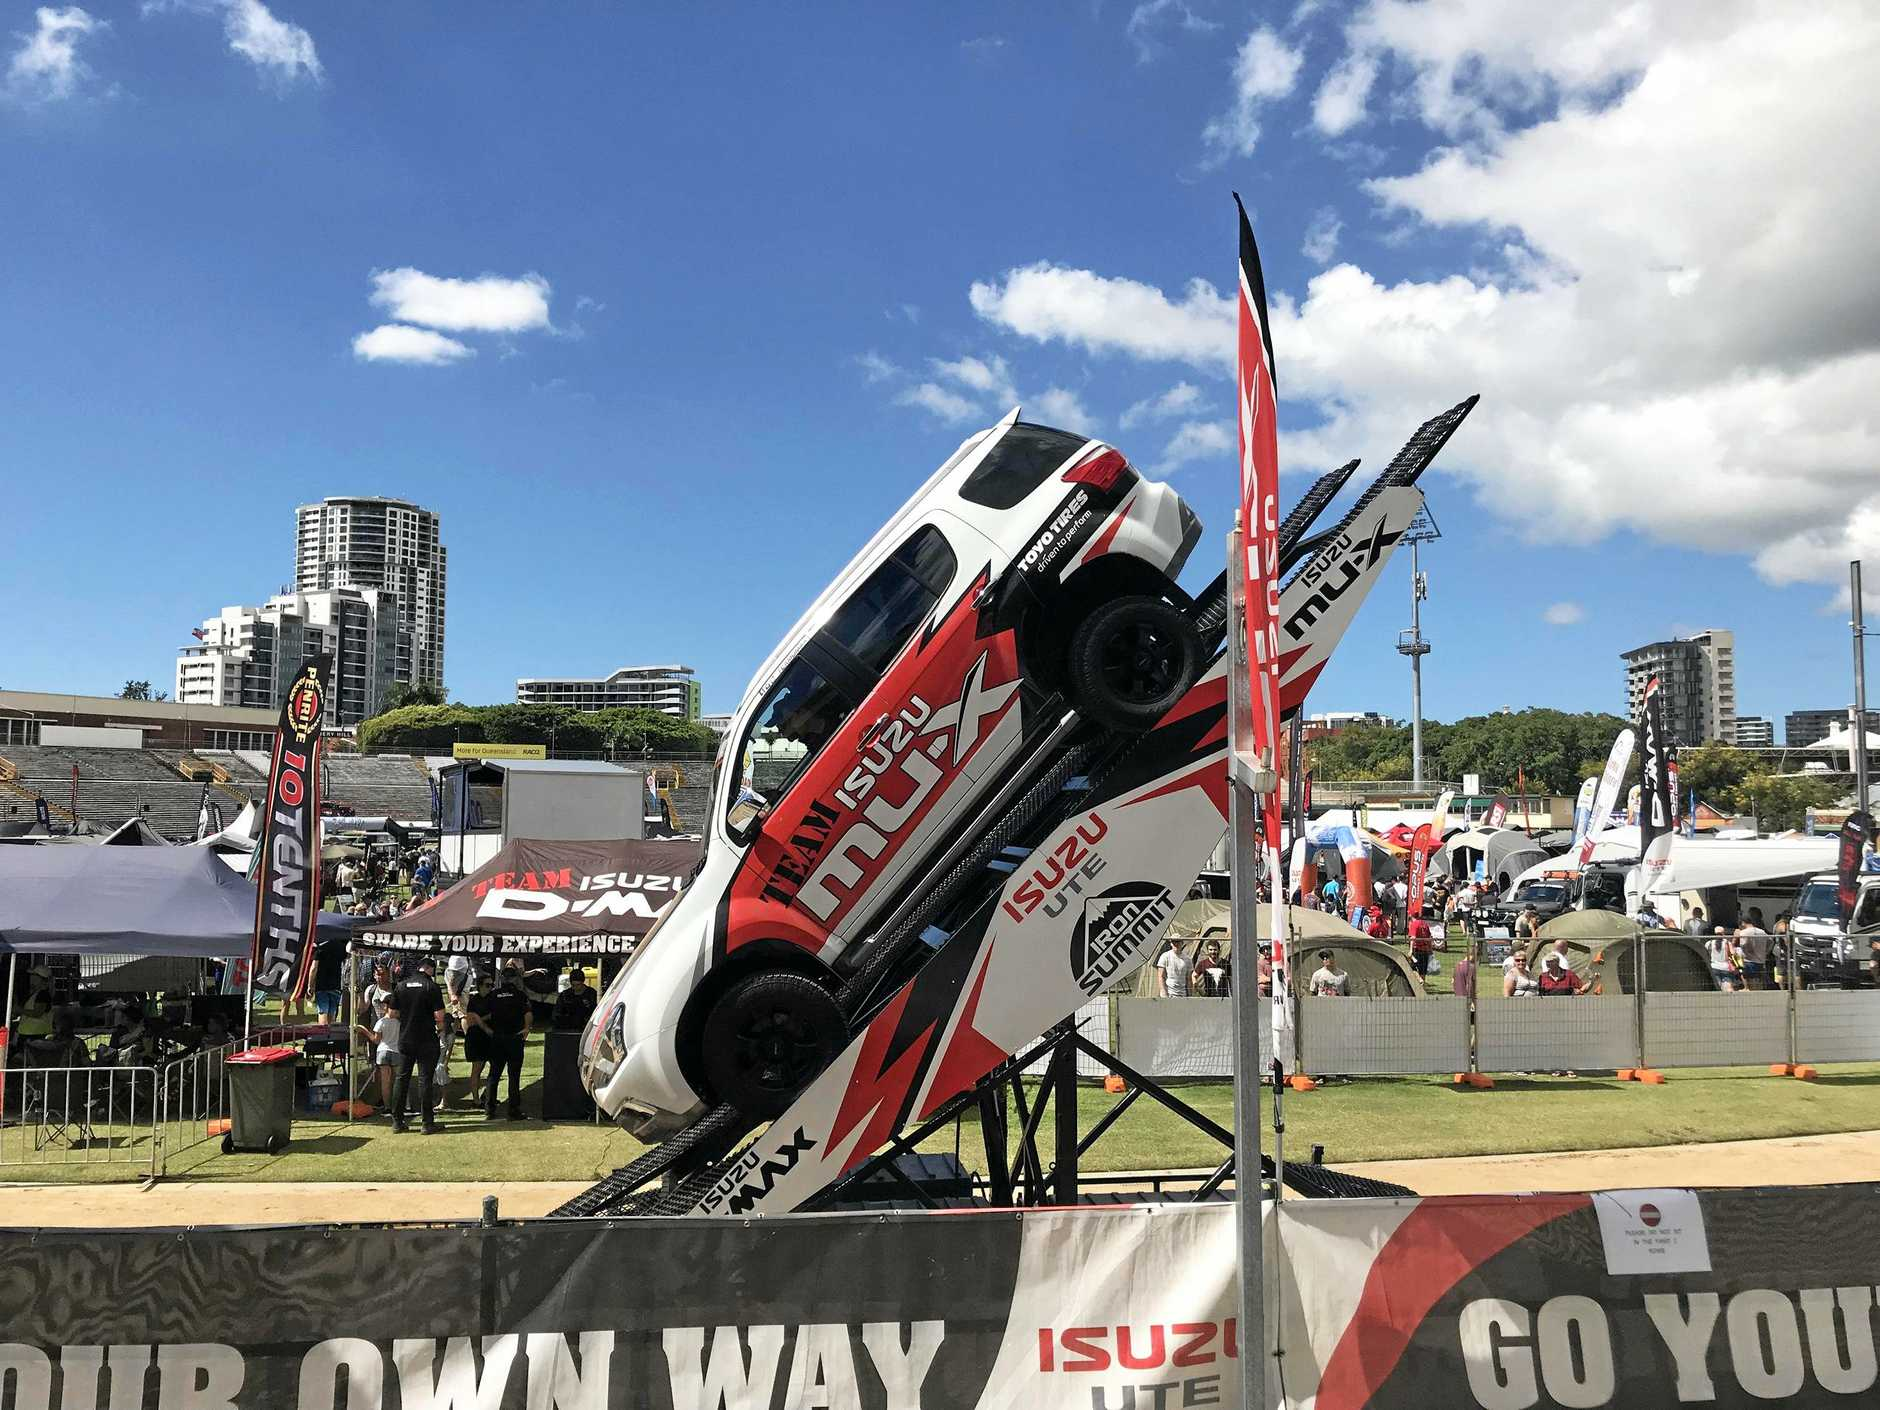 STEEP ENOUGH? Isuzu shows its wall-climbing ability on the test track.